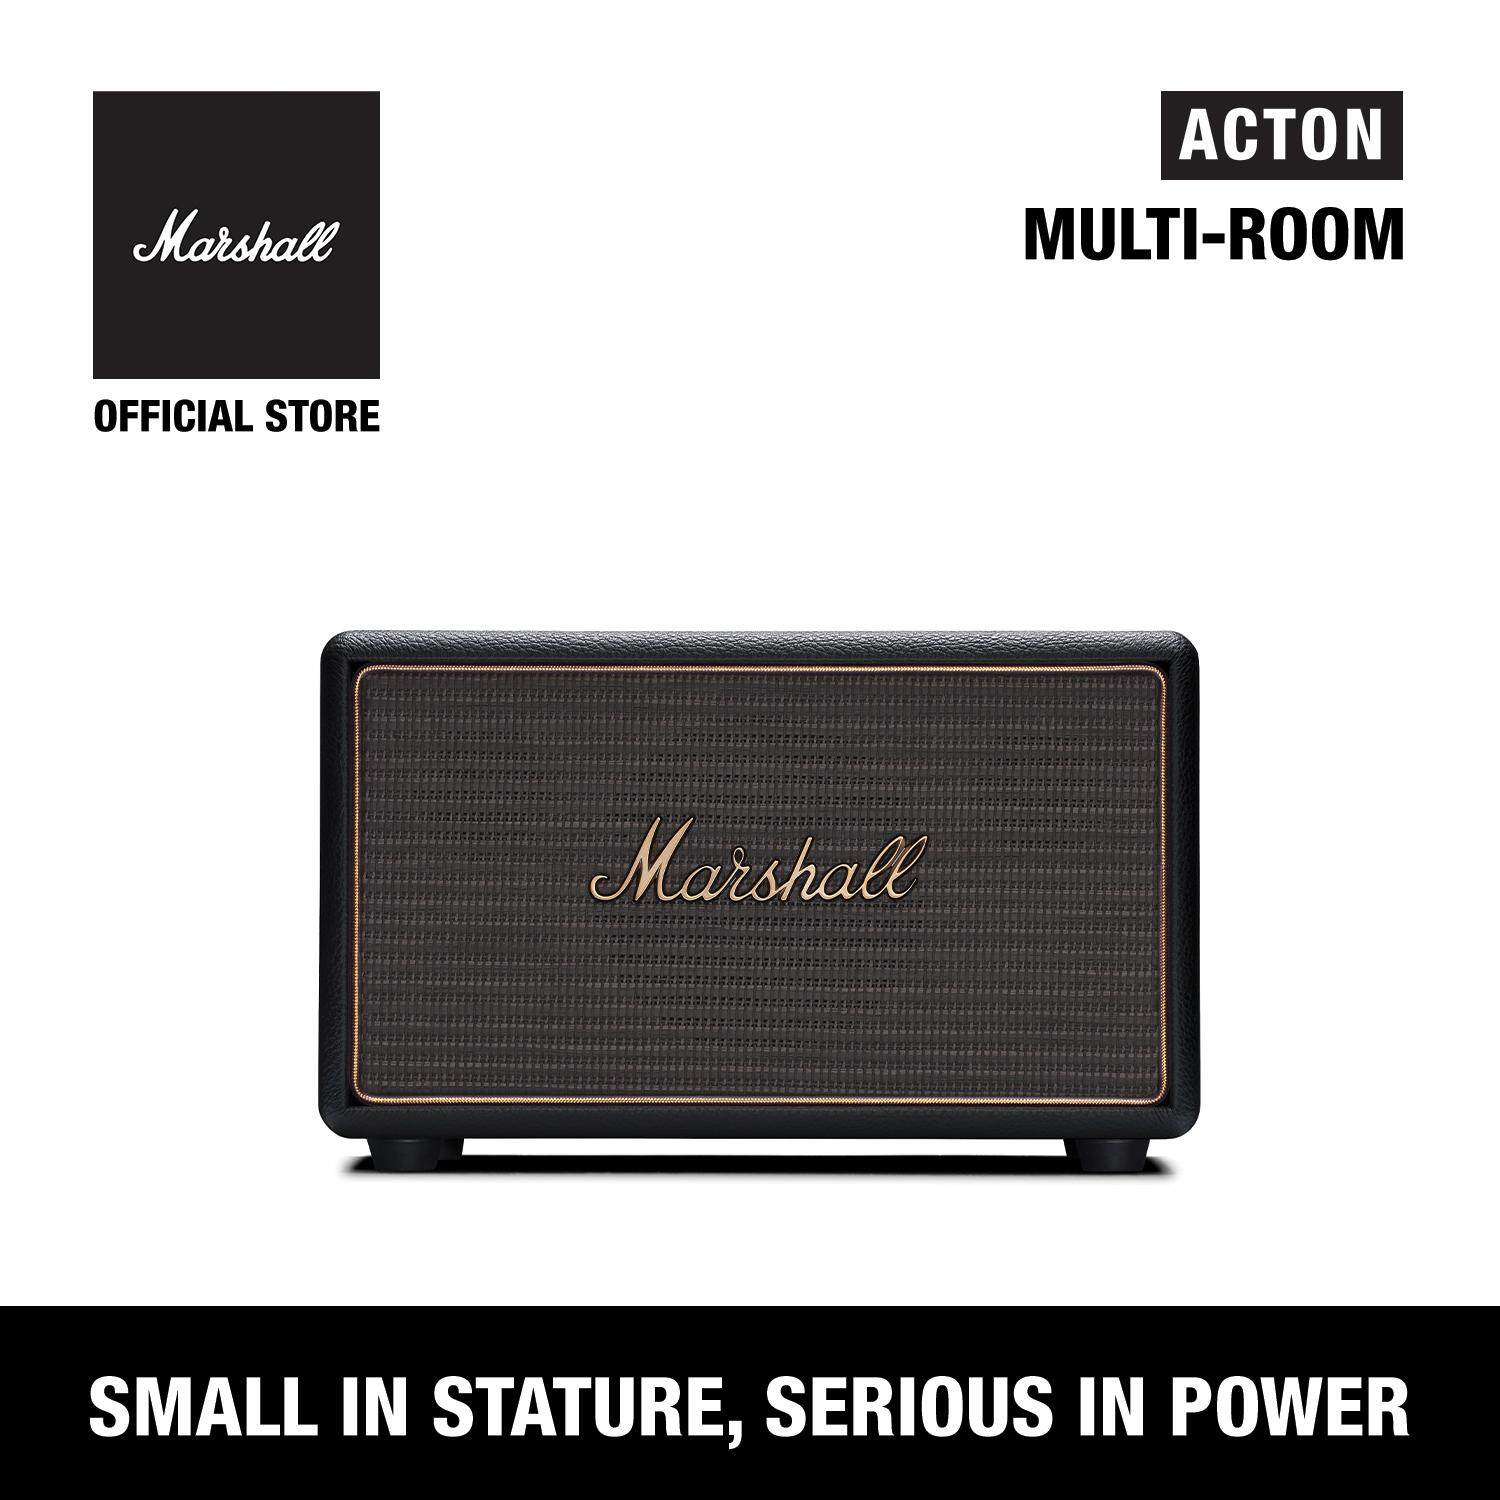 สอนใช้งาน  ลำโพงบลูทูธ Marshall Acton Multi-Room Black - Marshall Acton Multi-Room Speaker Black